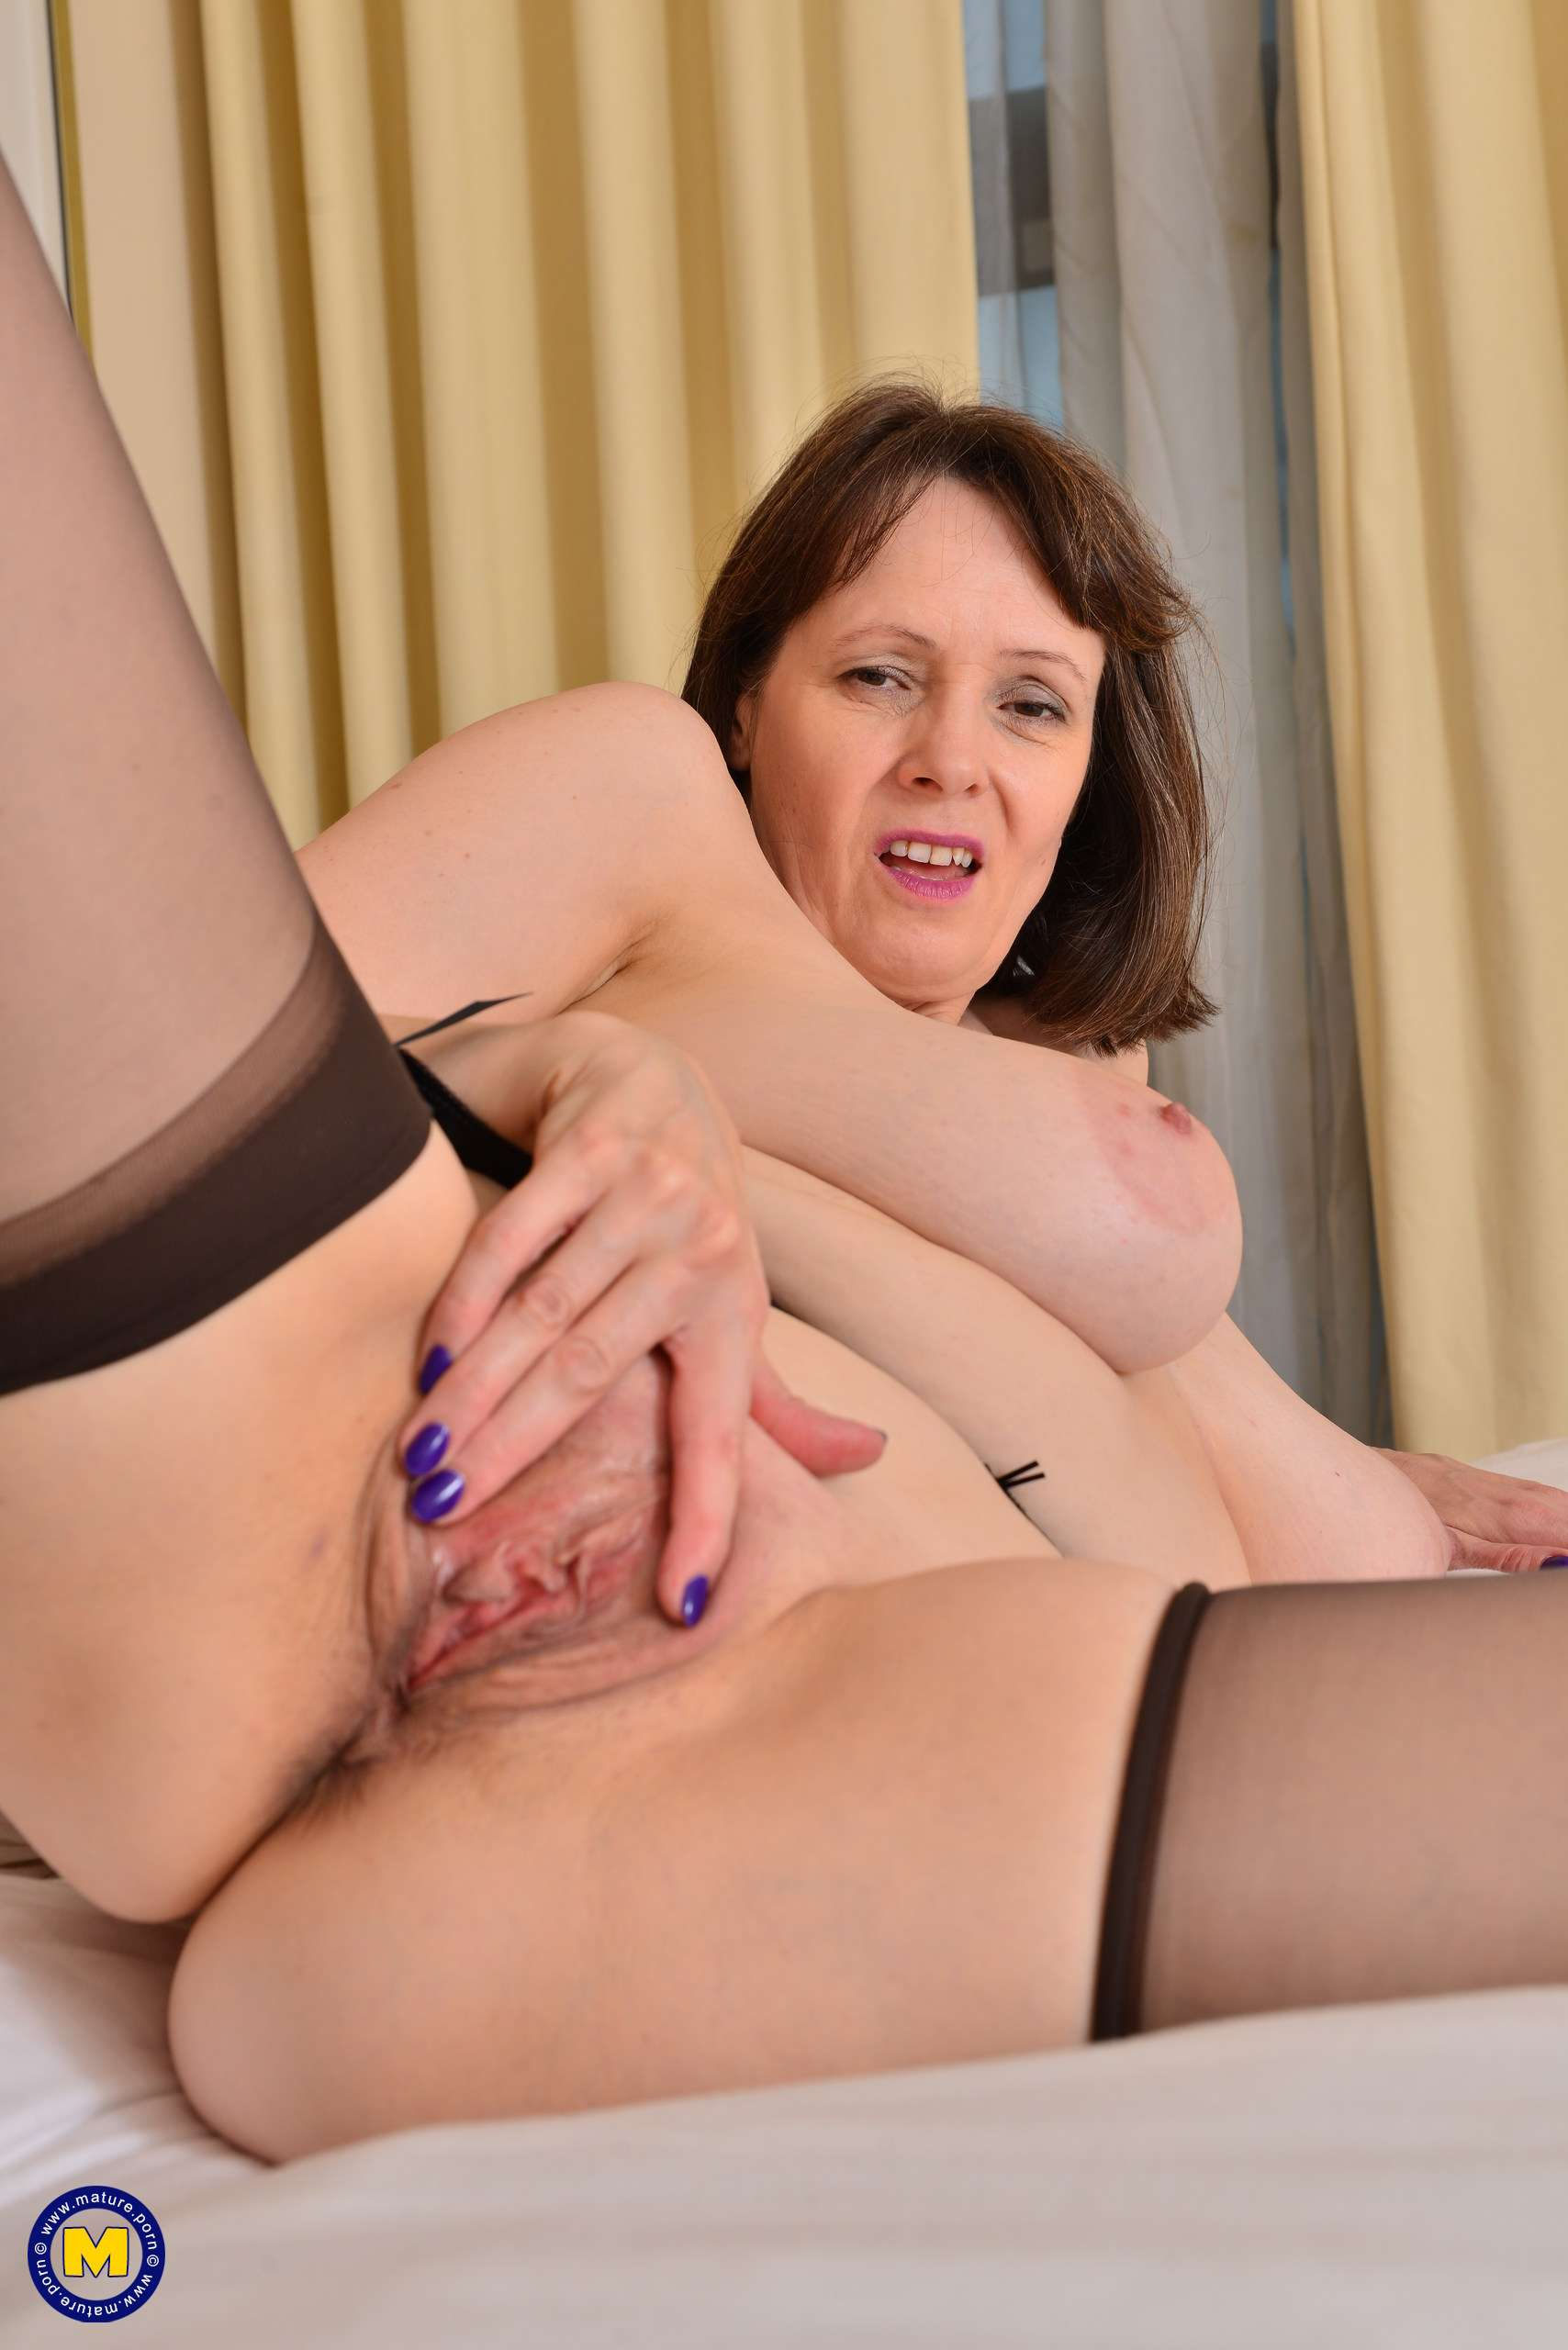 Big breasted housewife Tigger loves to play with her wet pussy